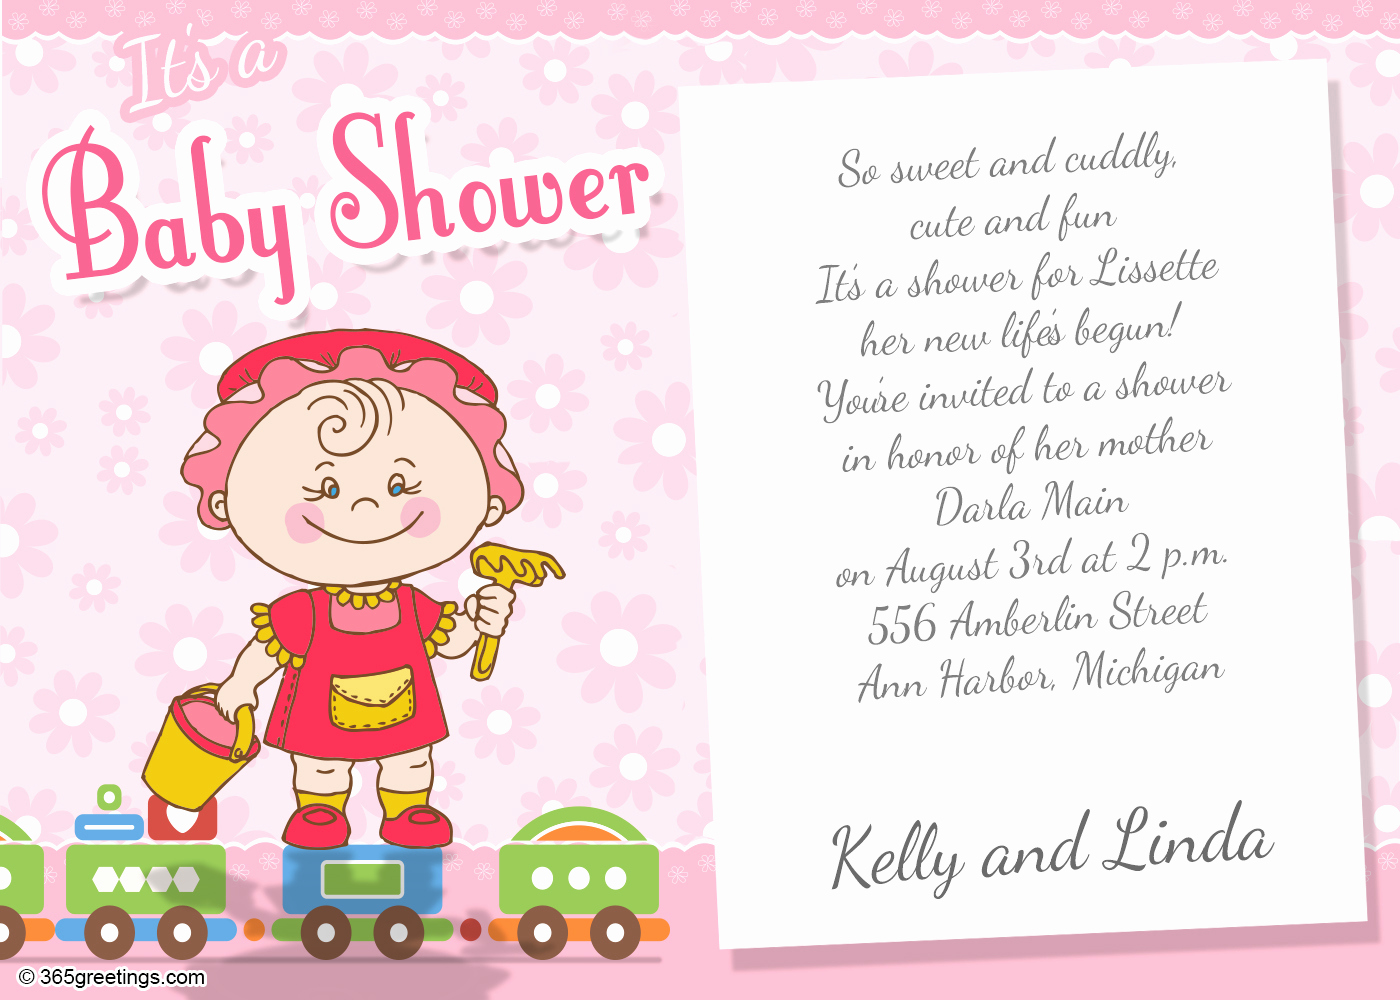 Baby Shower Invitation Text Luxury Baby Shower Invitation Wording for Girl 365greetings